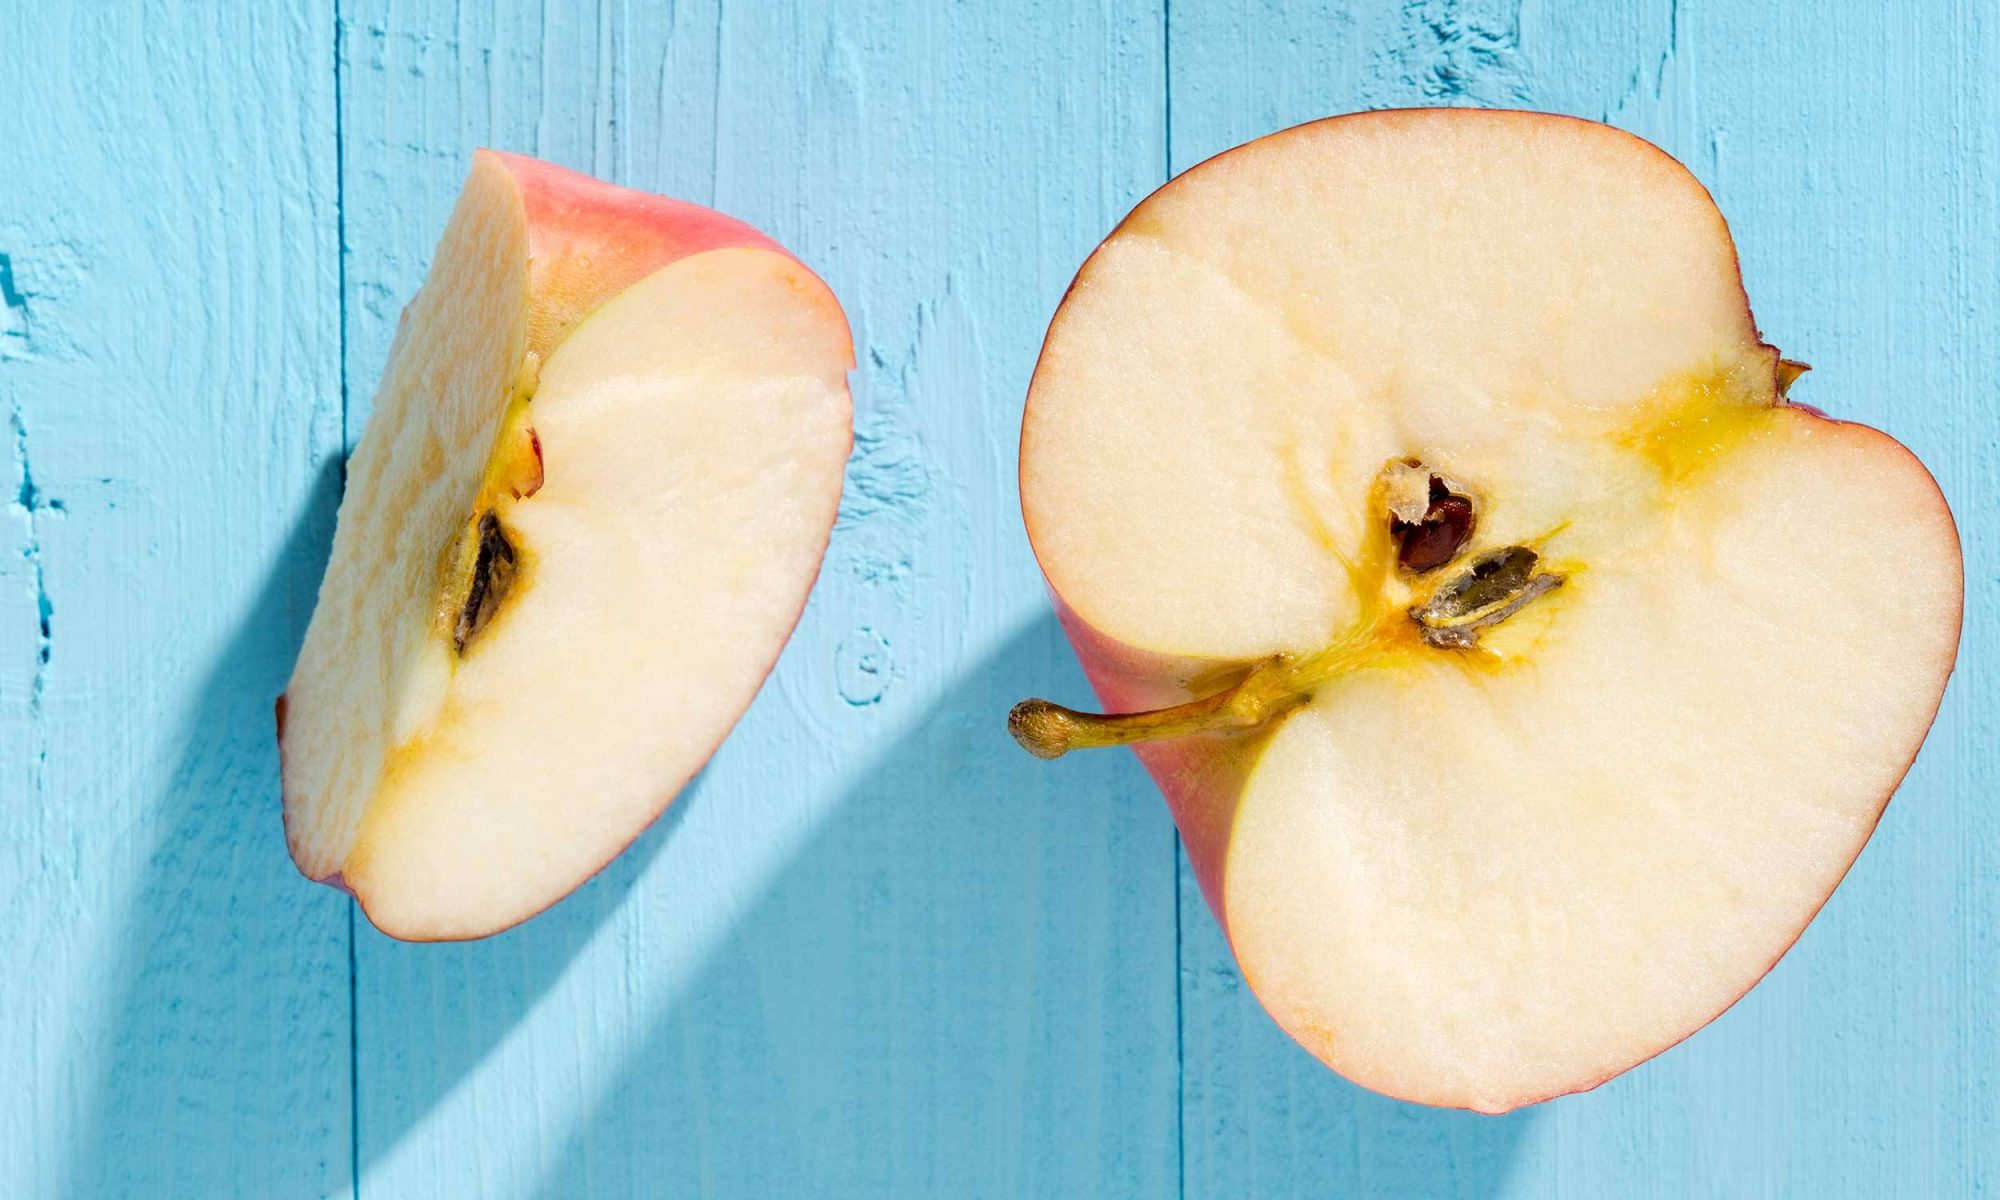 EC: How to Prevent Apple Slices from Turning Brown